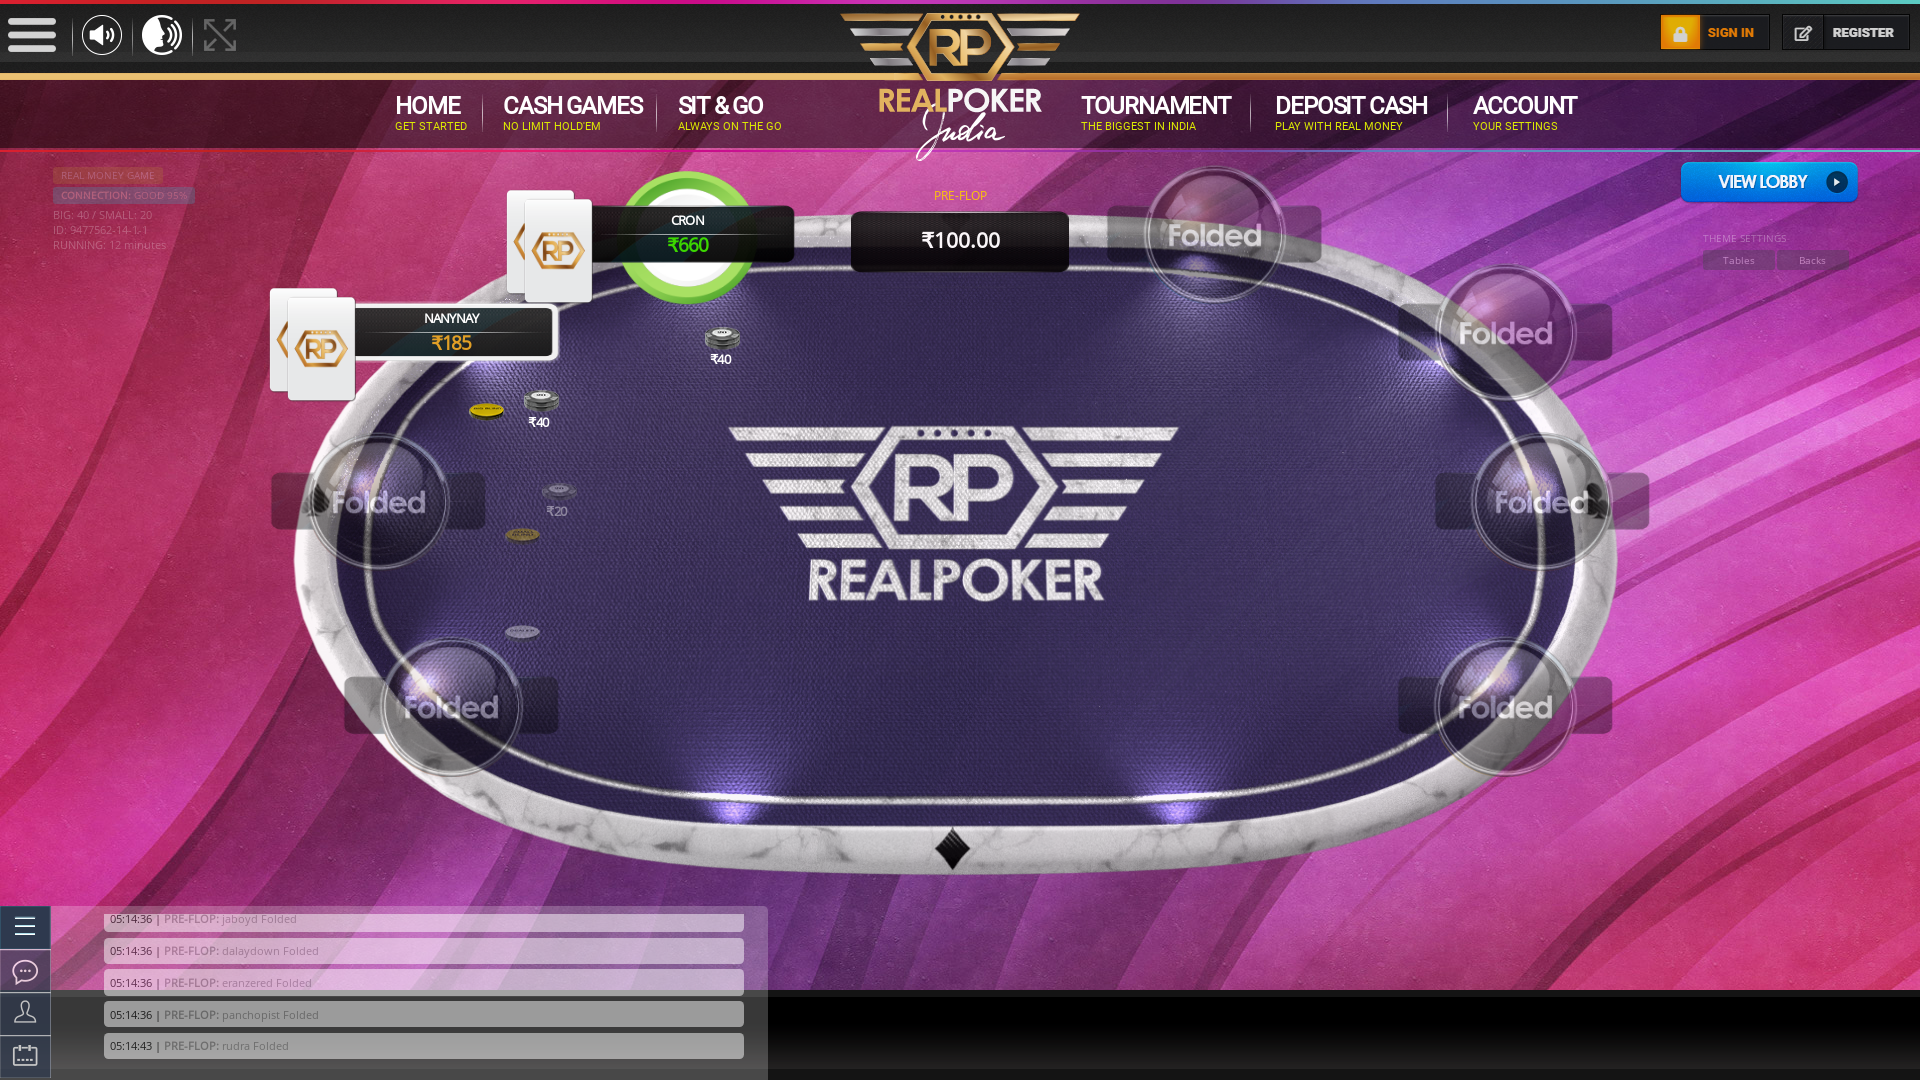 Chandni Chowk, New Delhi Online Poker on the 24th April